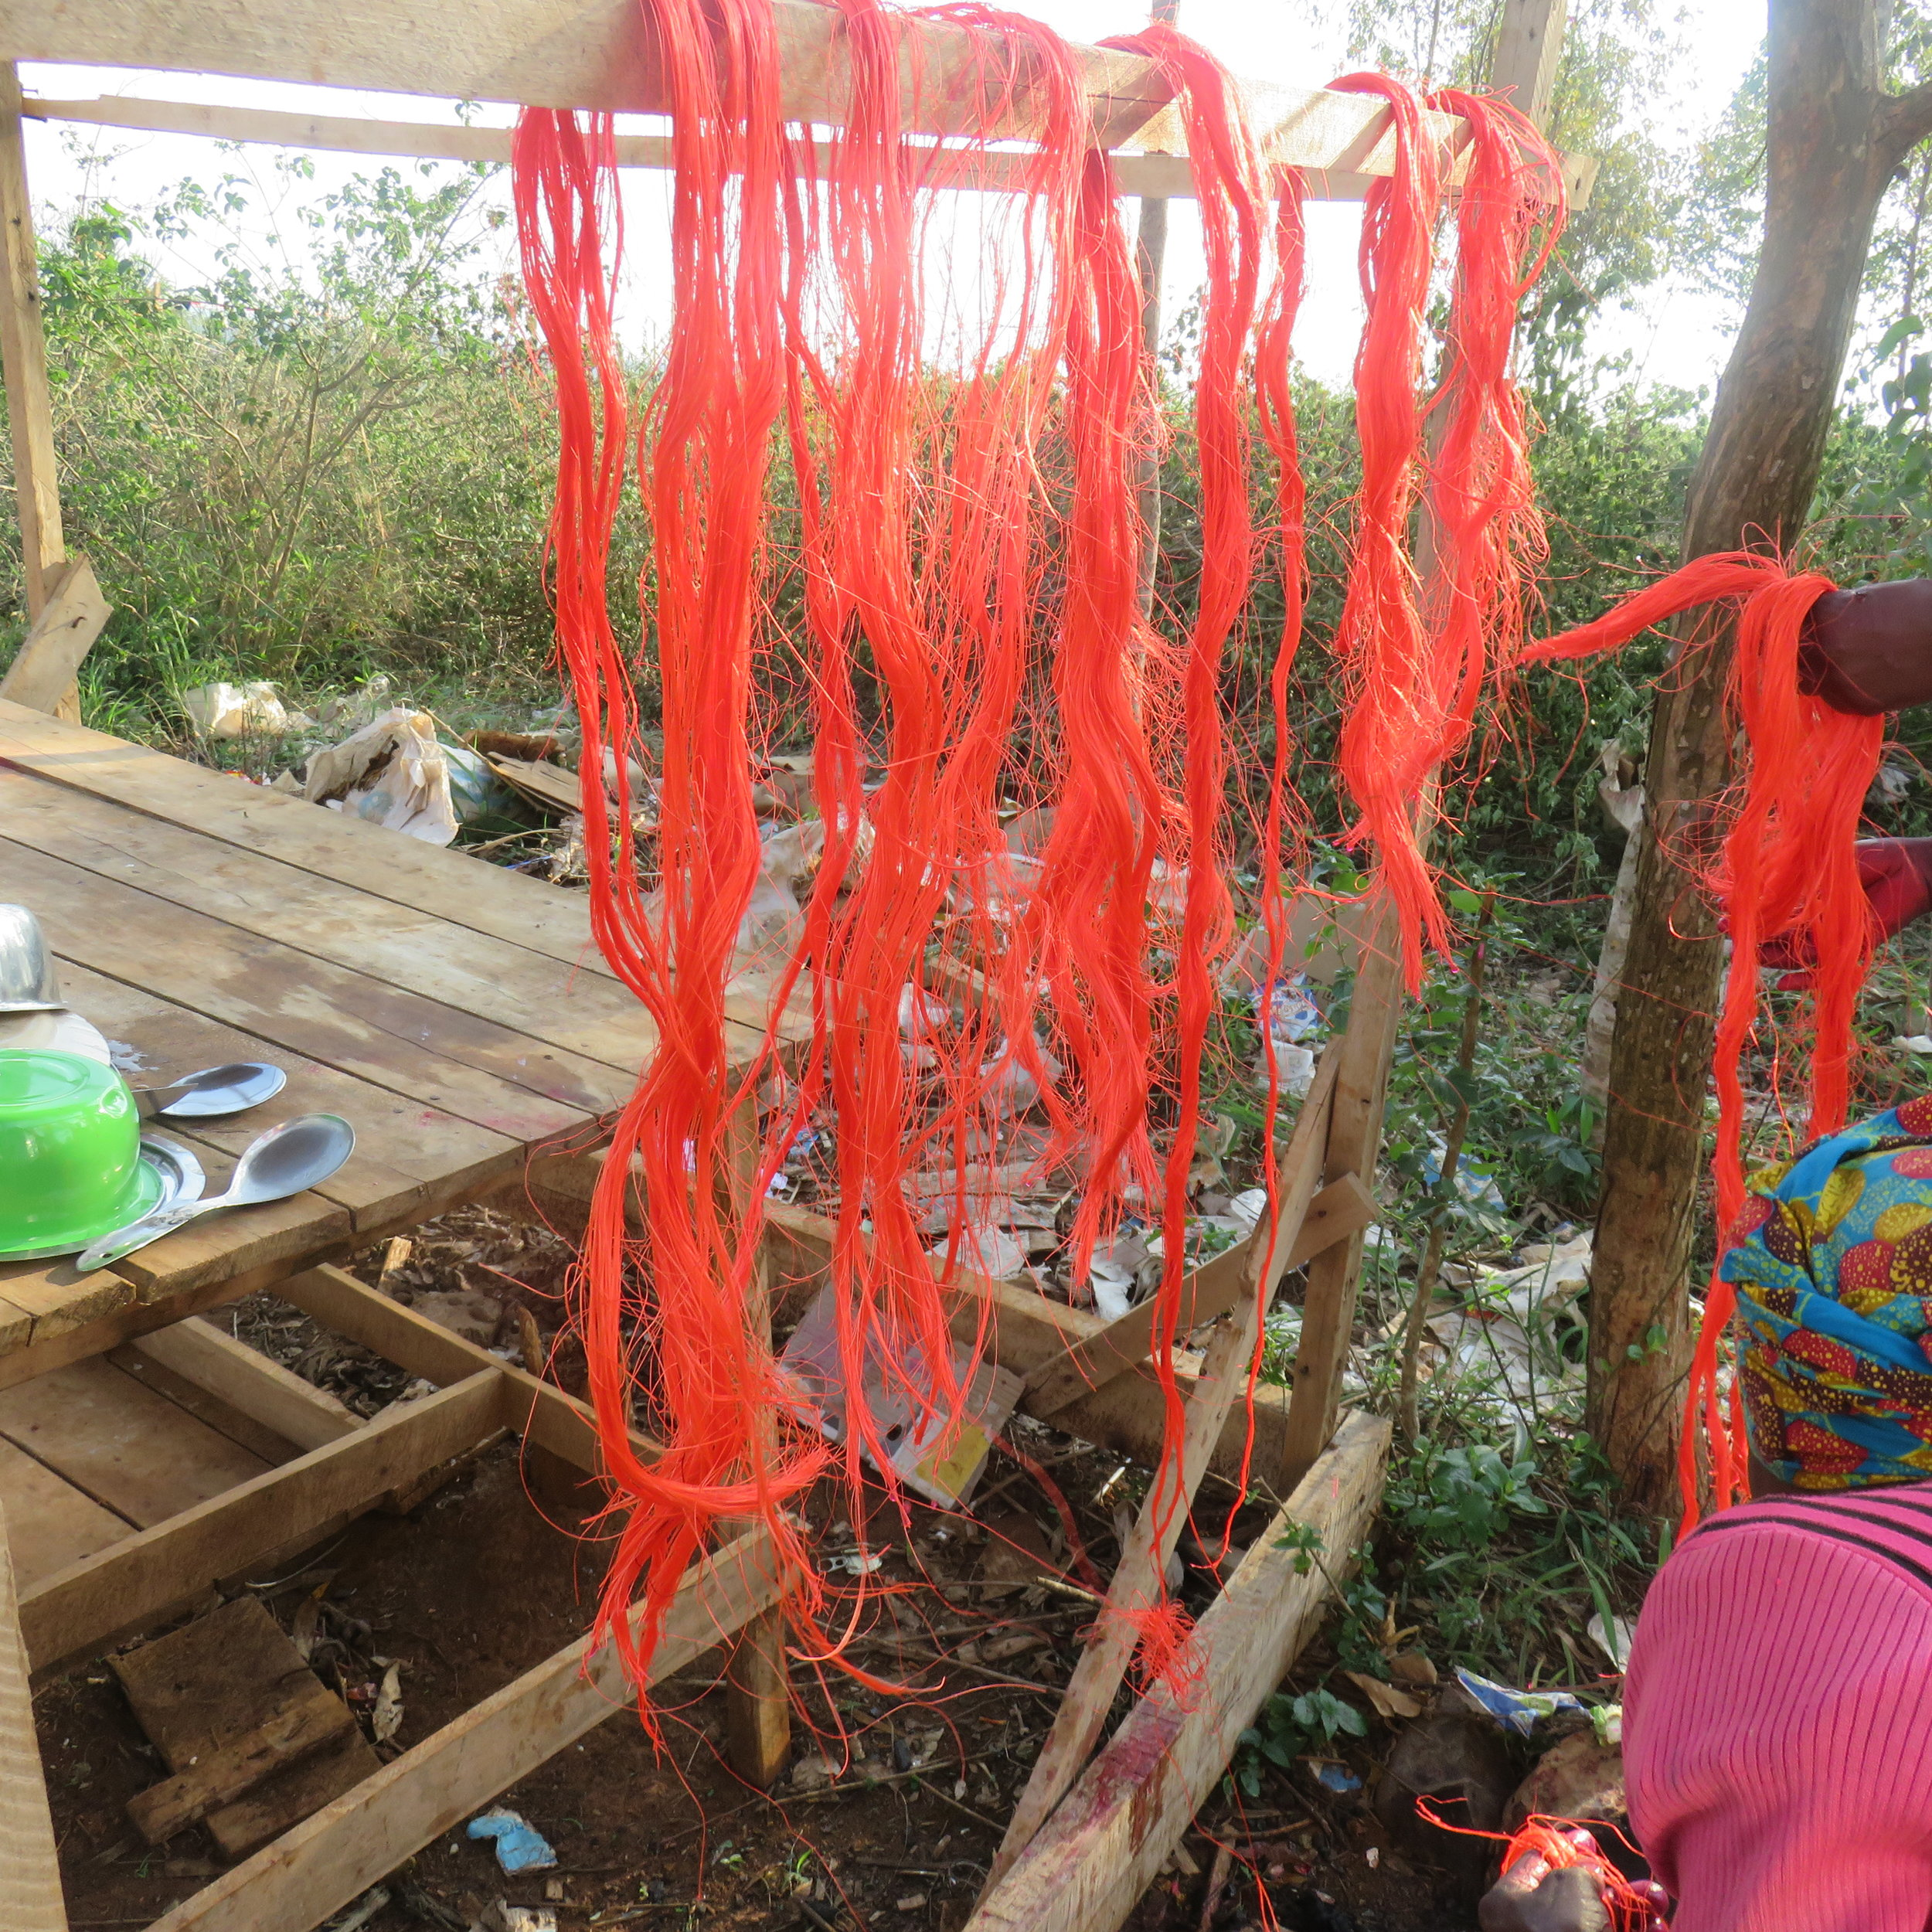 Figure 7: Newly-colored fiber having been hung to dry.